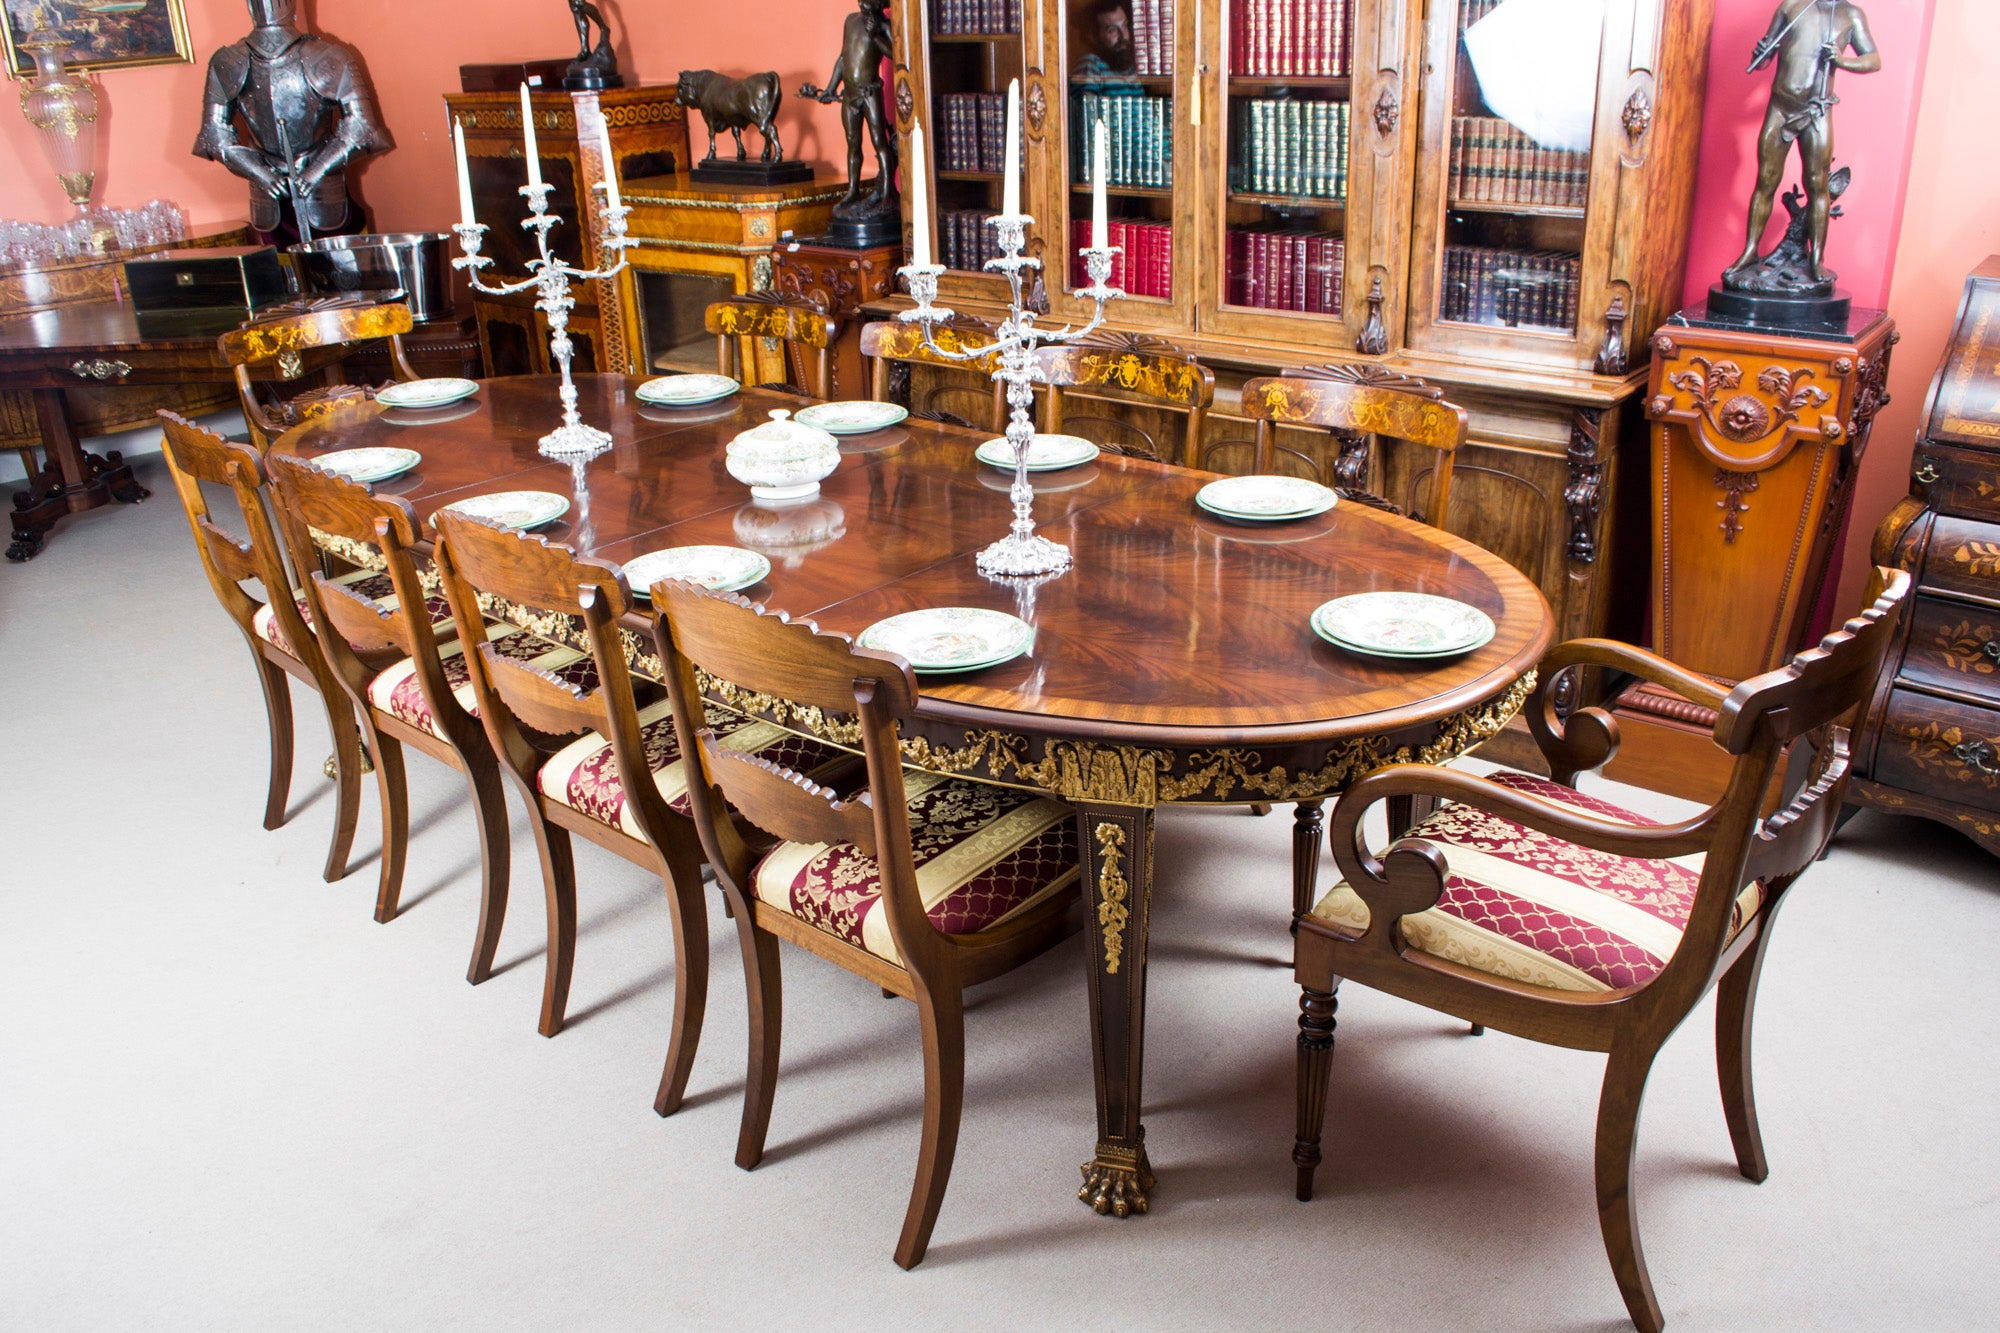 Antique ormolu mounted flame mahogany dining table circa 1920 at antique ormolu mounted flame mahogany dining table circa 1920 at 1stdibs dzzzfo